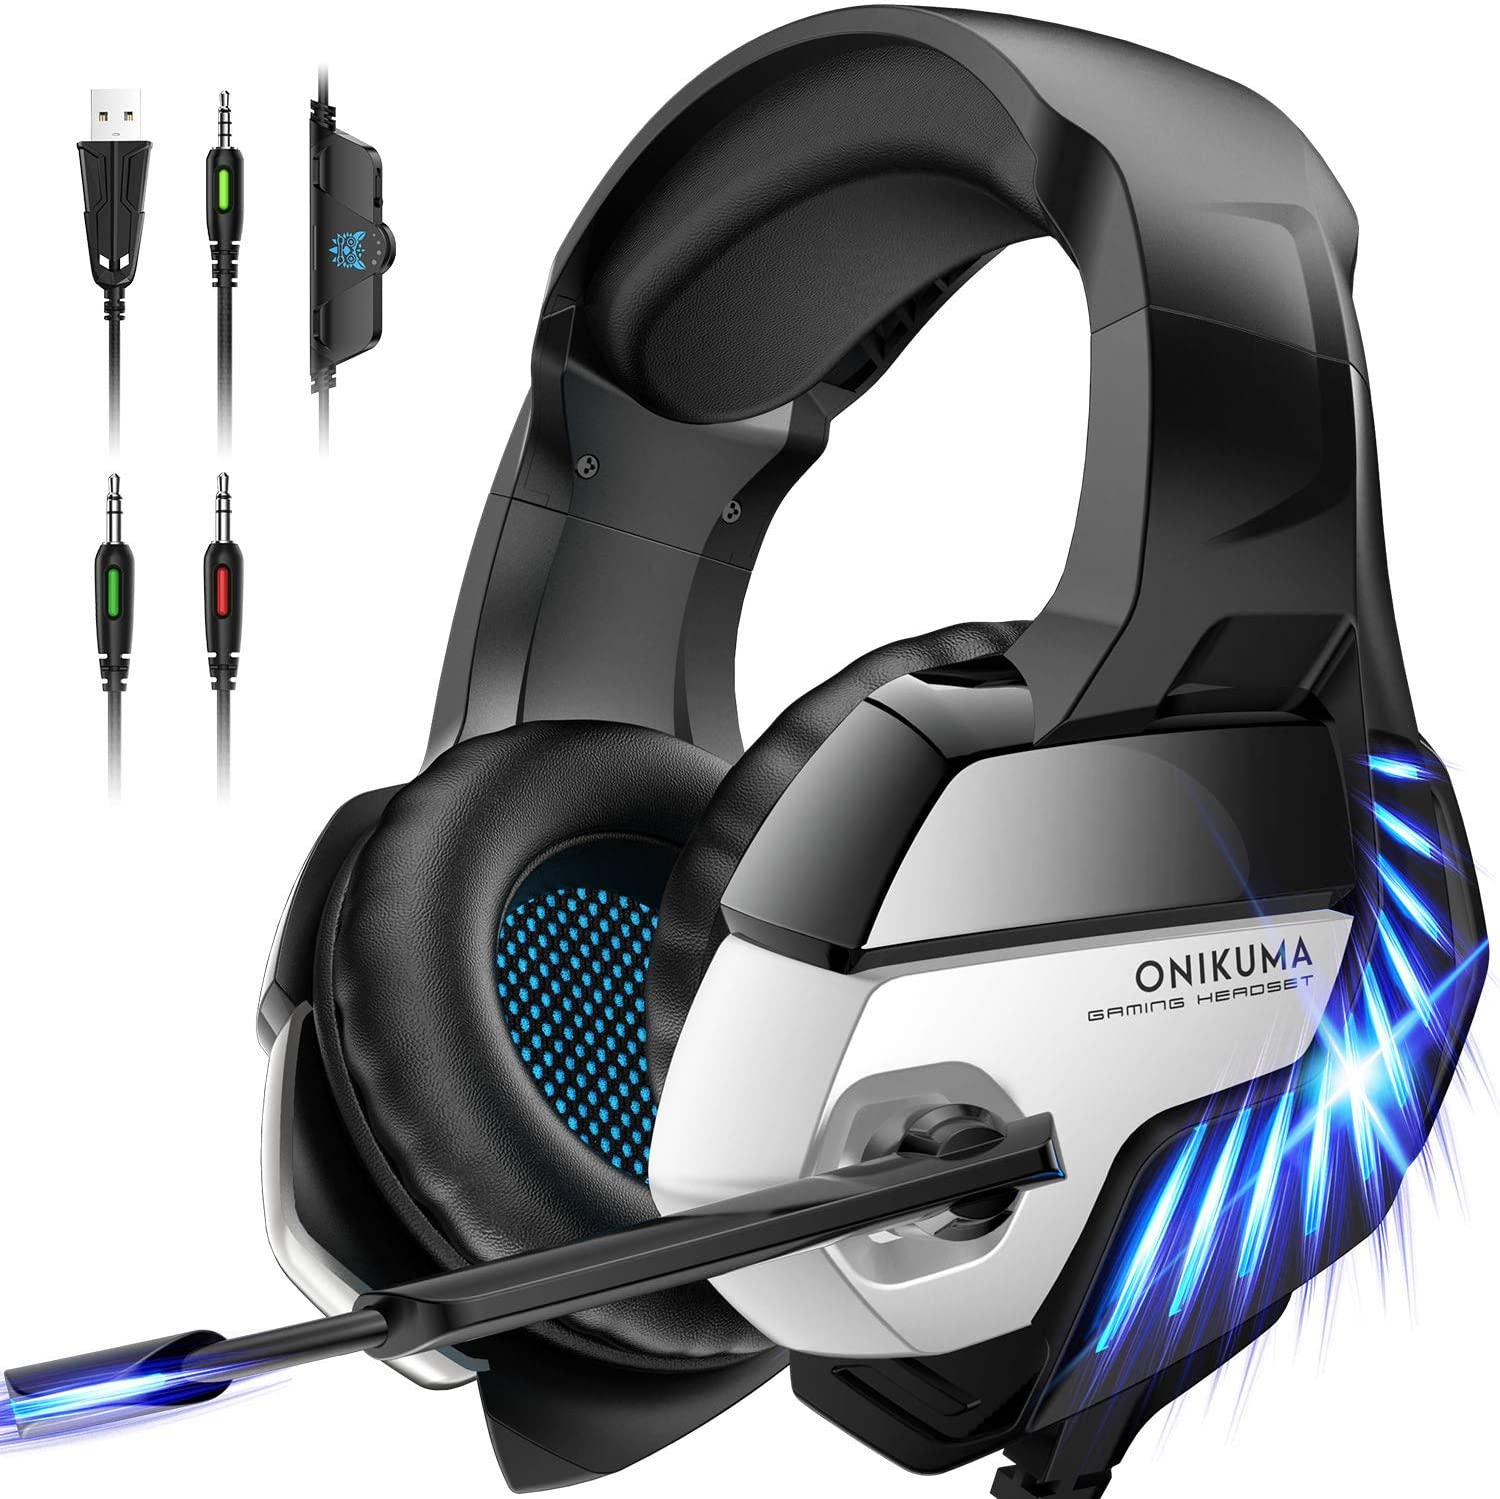 ONIKUMA Gaming Headset for PS4, PS4 Gaming Headset with 7.1 Surround Sound, Xbox One Headset with Noise Canceling Mic LED Light, Over-Ear Headphones for PS4, Xbox One, PC, Mac, Laptop (Black)